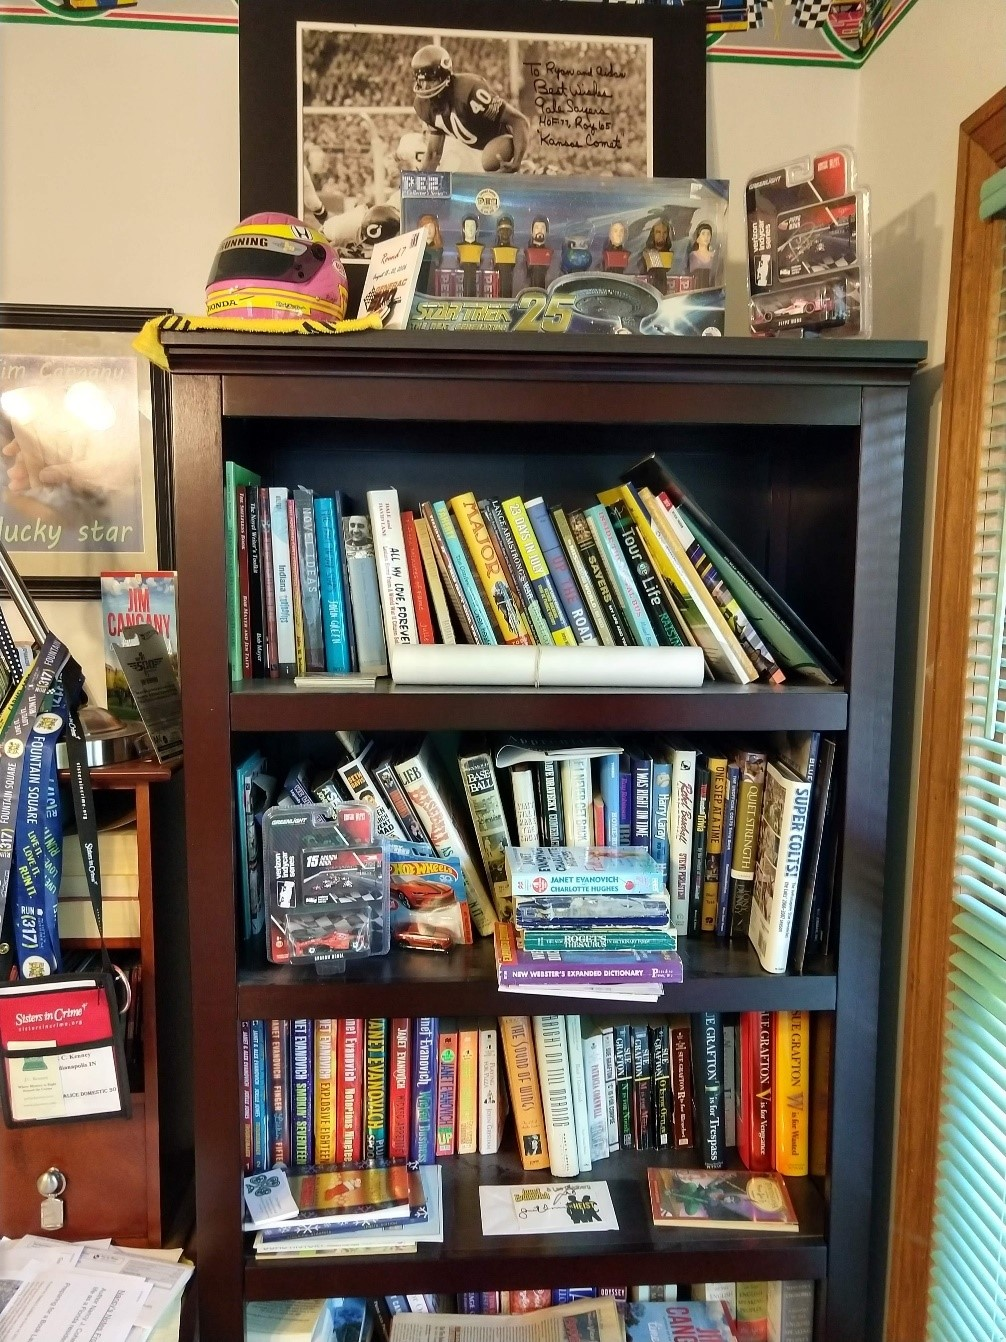 Bookshelf Bootcamp By J C Kenney Kensington Books Publishing,Checked Baggage United Cost